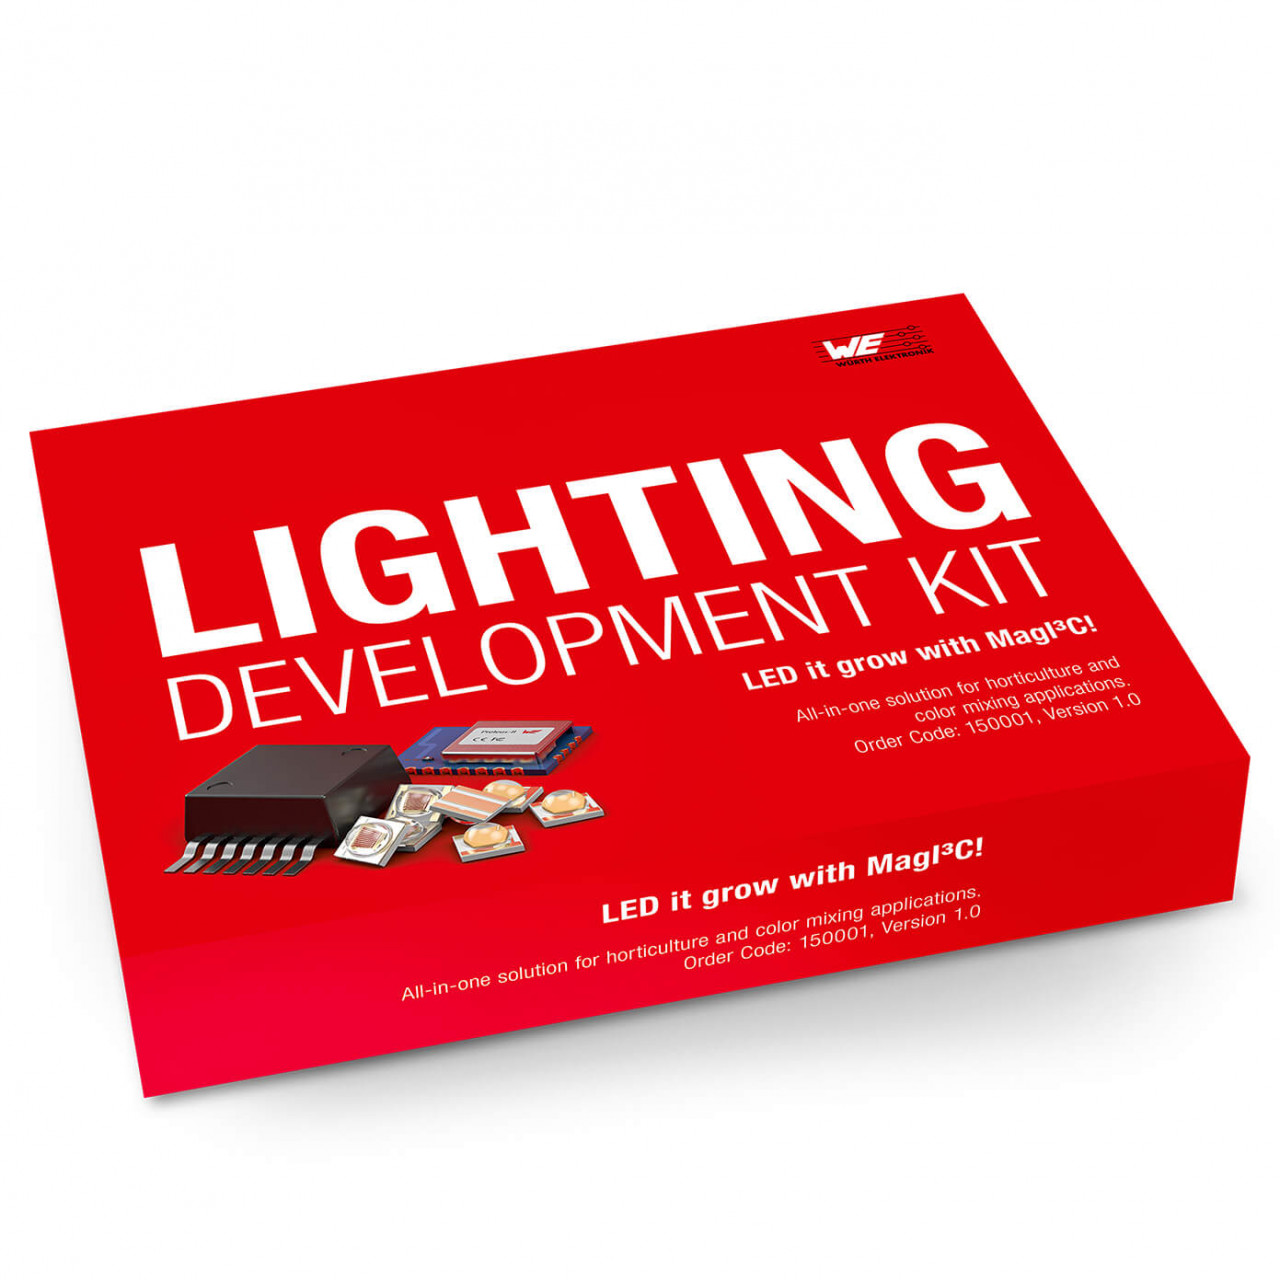 Lighting_Development_Kit_Box